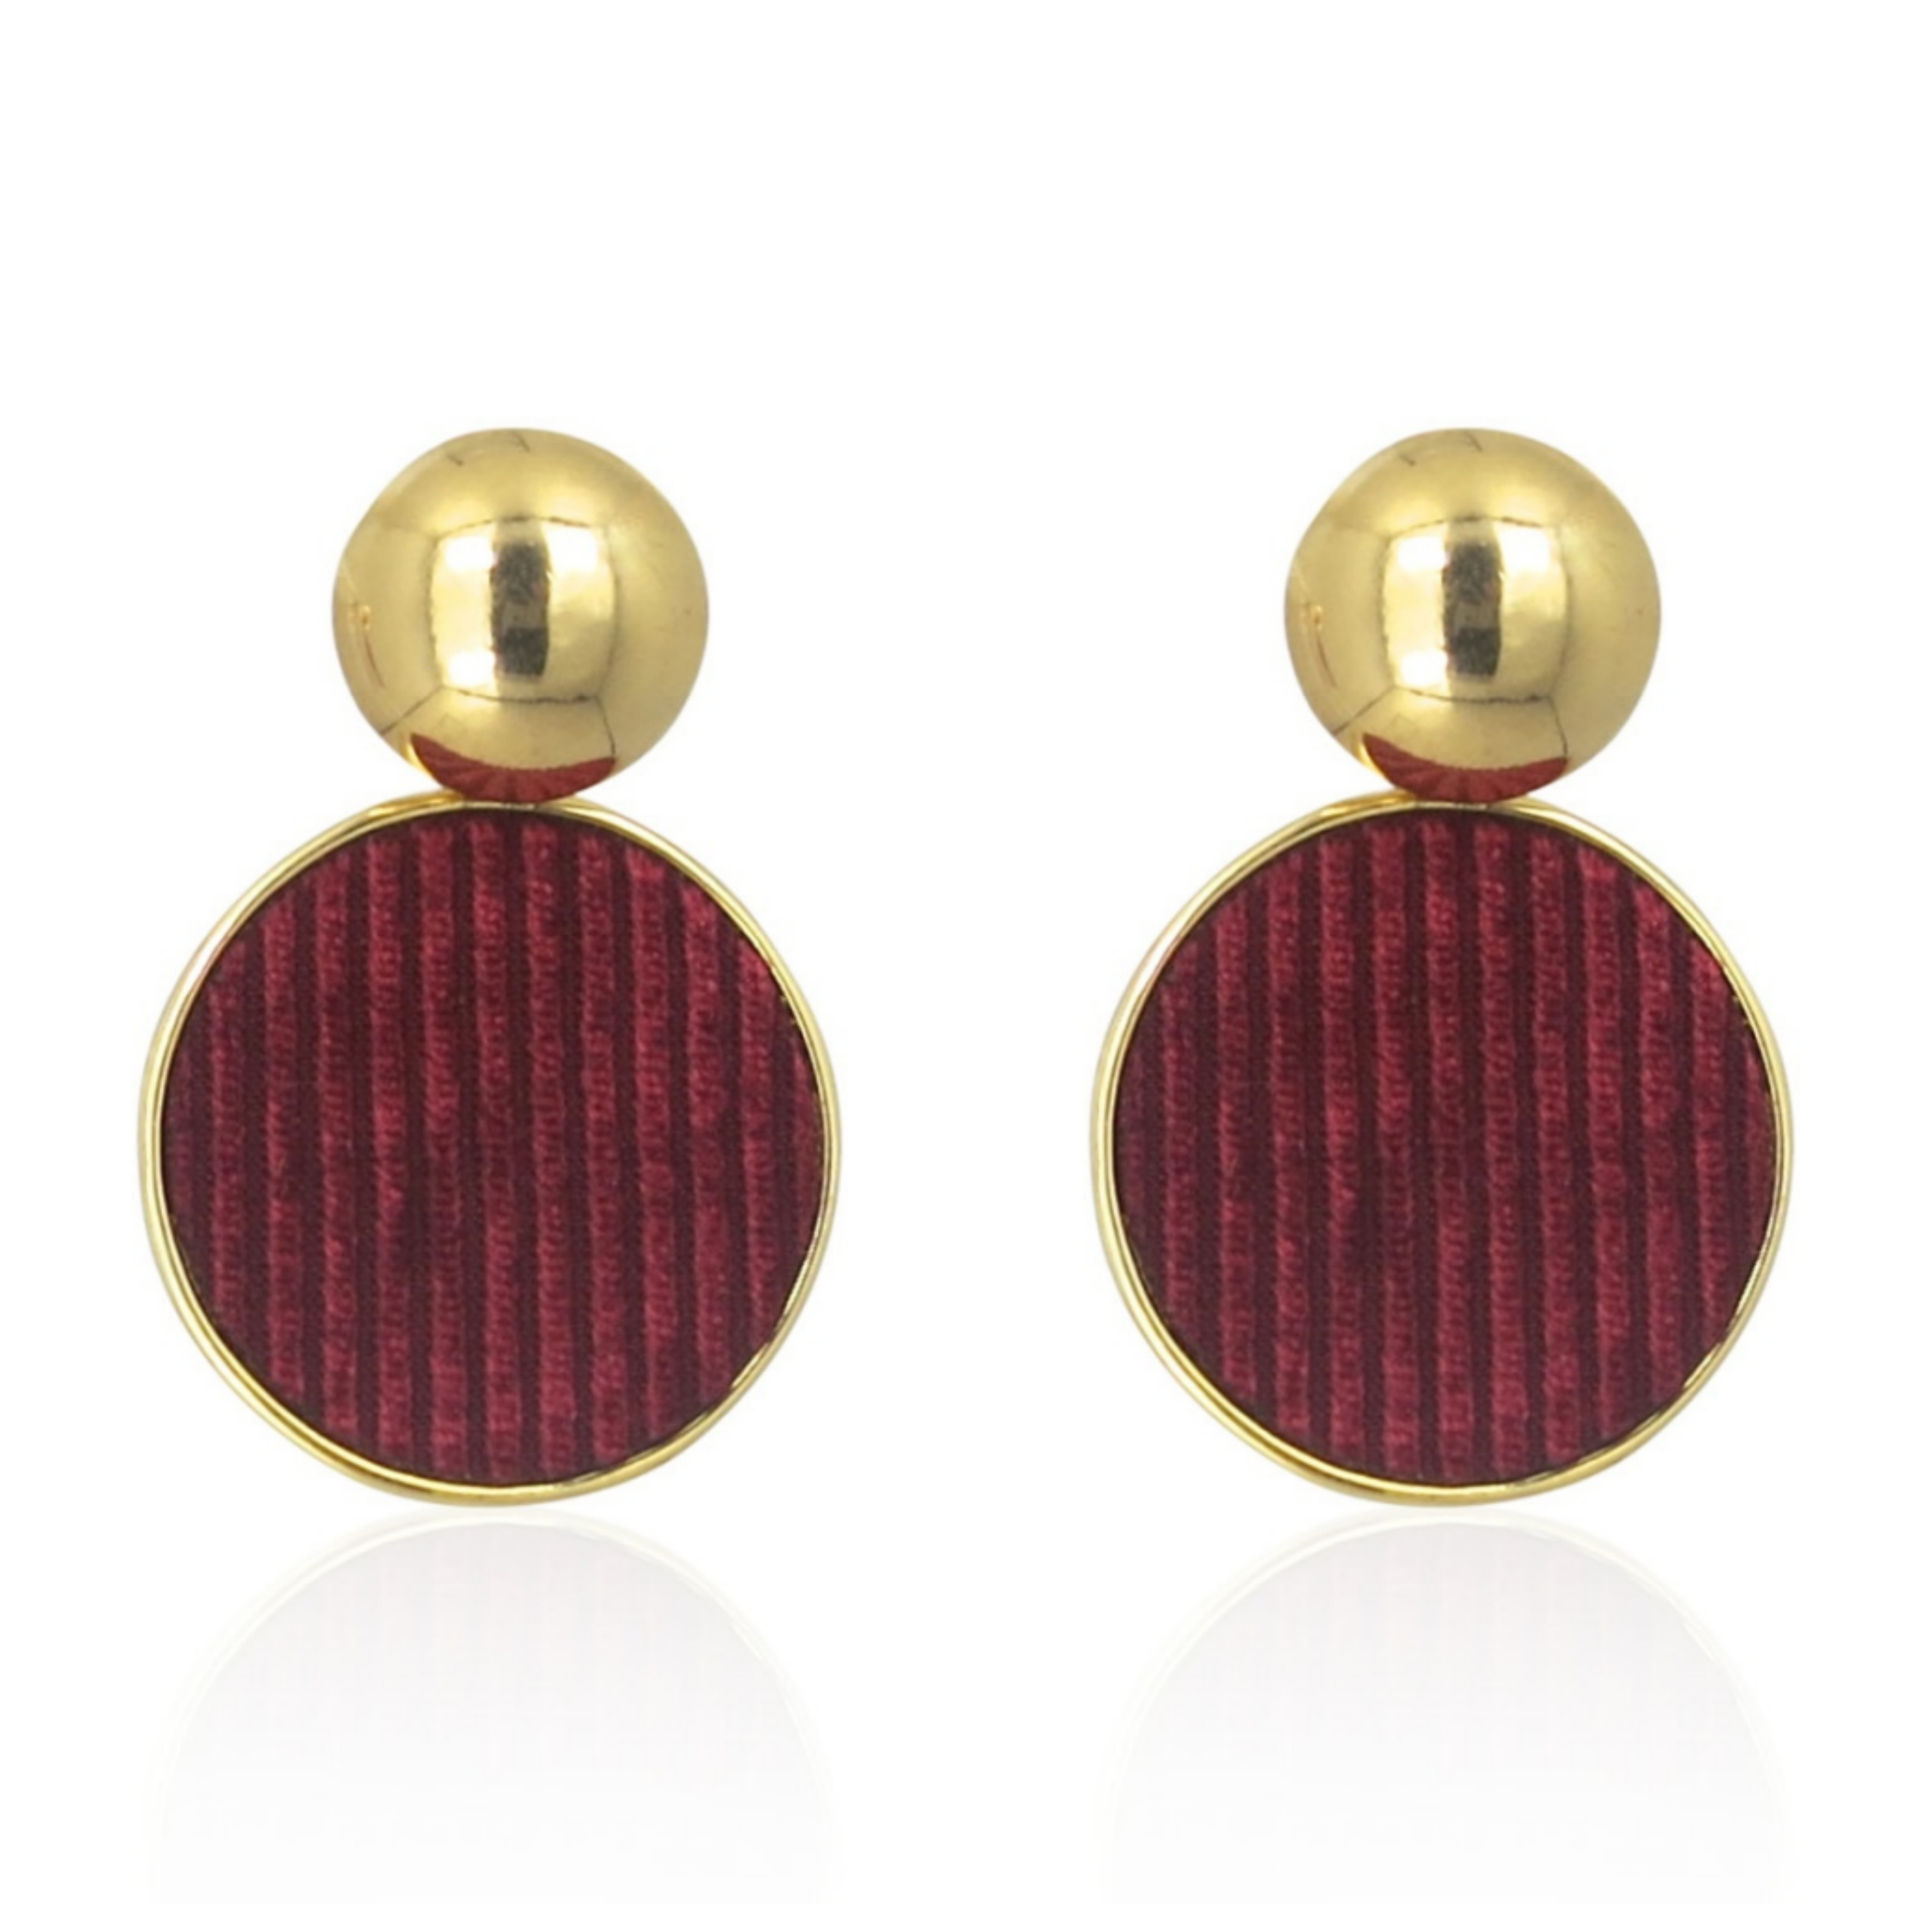 Lara Design - Earrings Red Velvet a